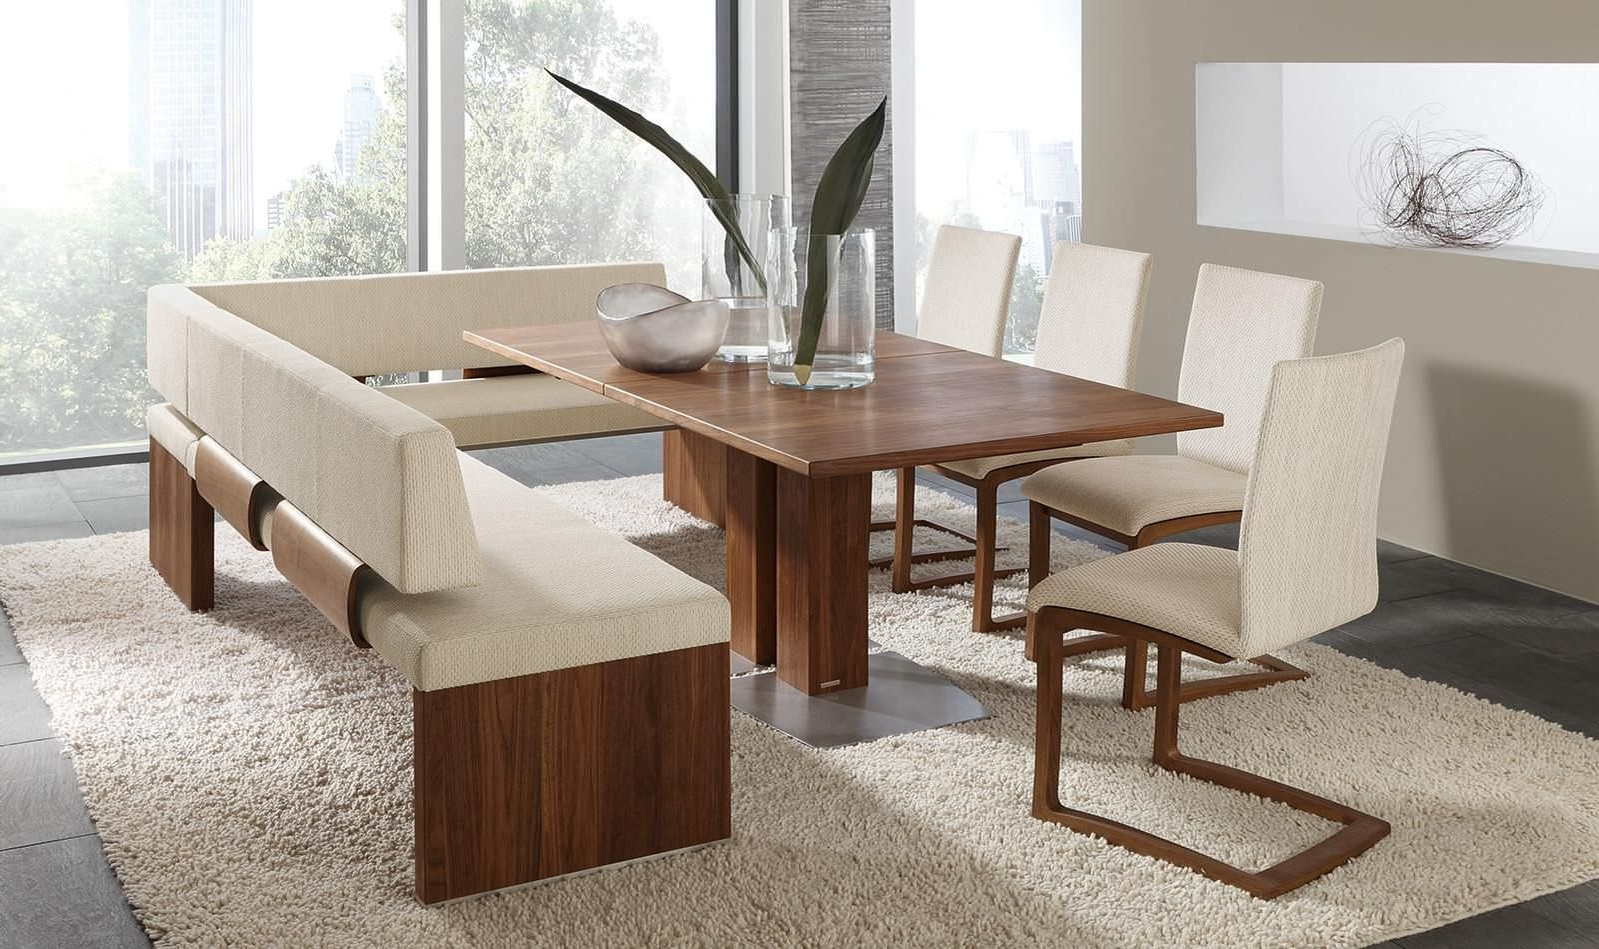 Contemporary Dining Table / Wooden / Rectangular – Et364 – Alfons With Regard To Best And Newest Contemporary Dining Tables (Gallery 1 of 25)